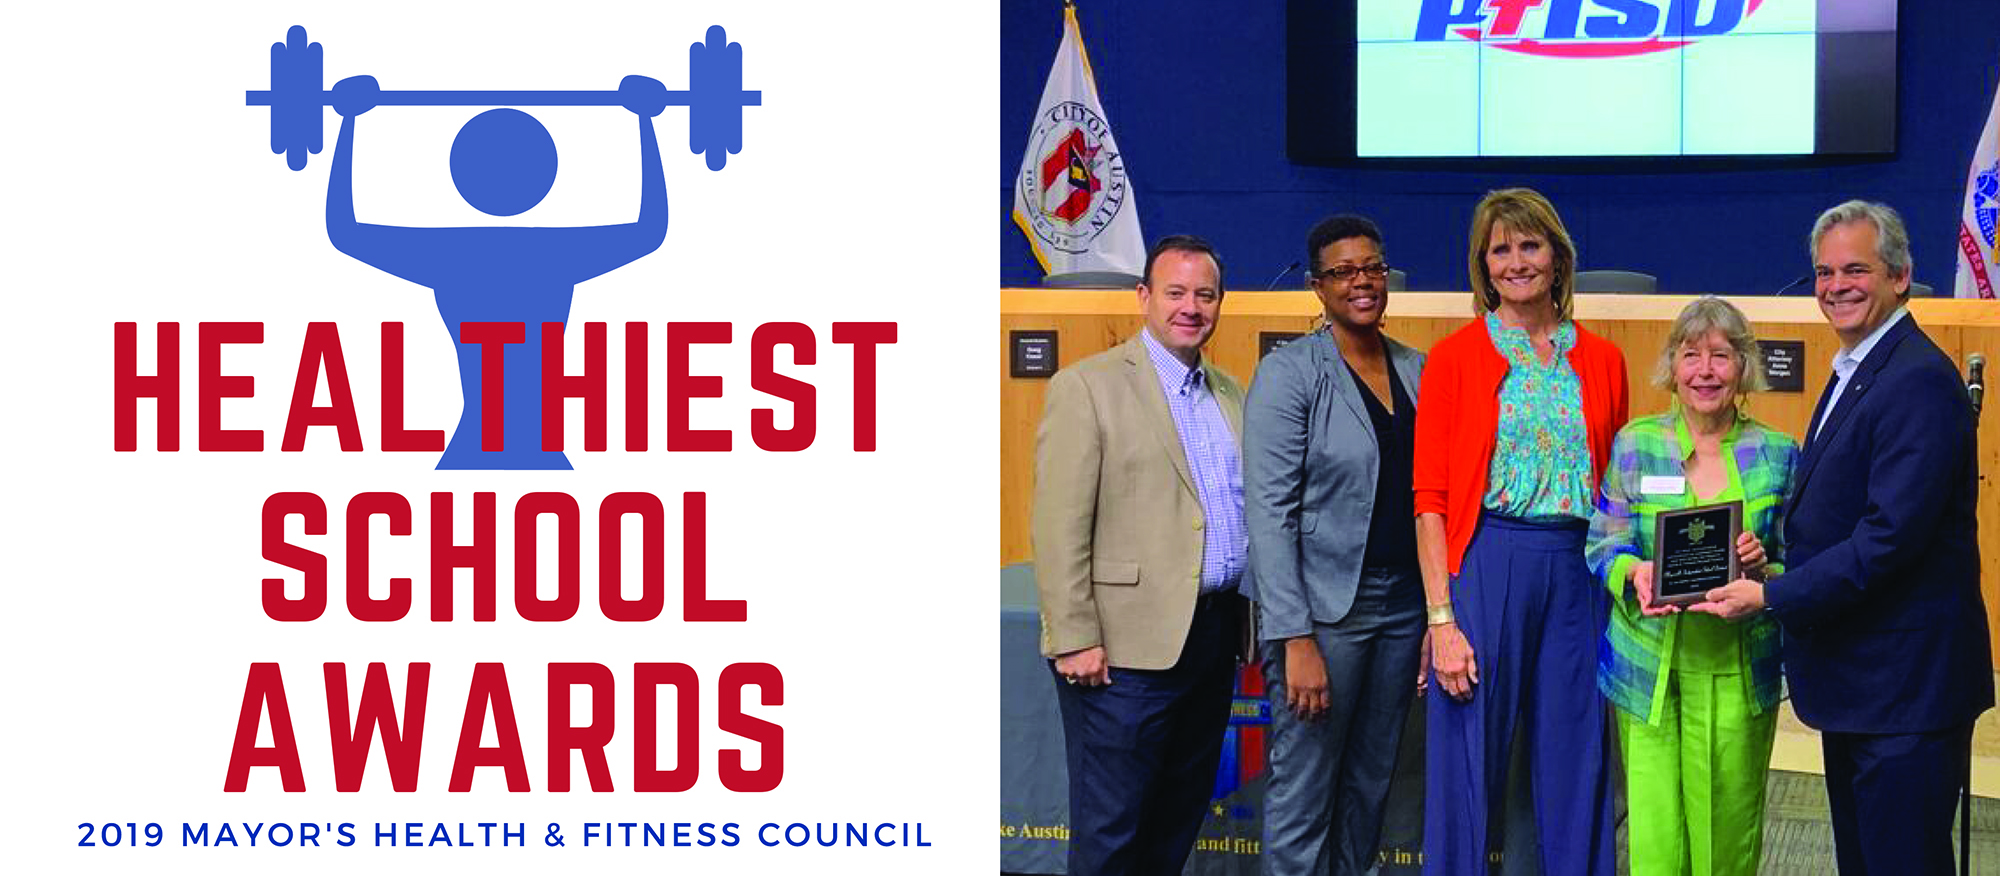 Mayor's Healthiest School Awards